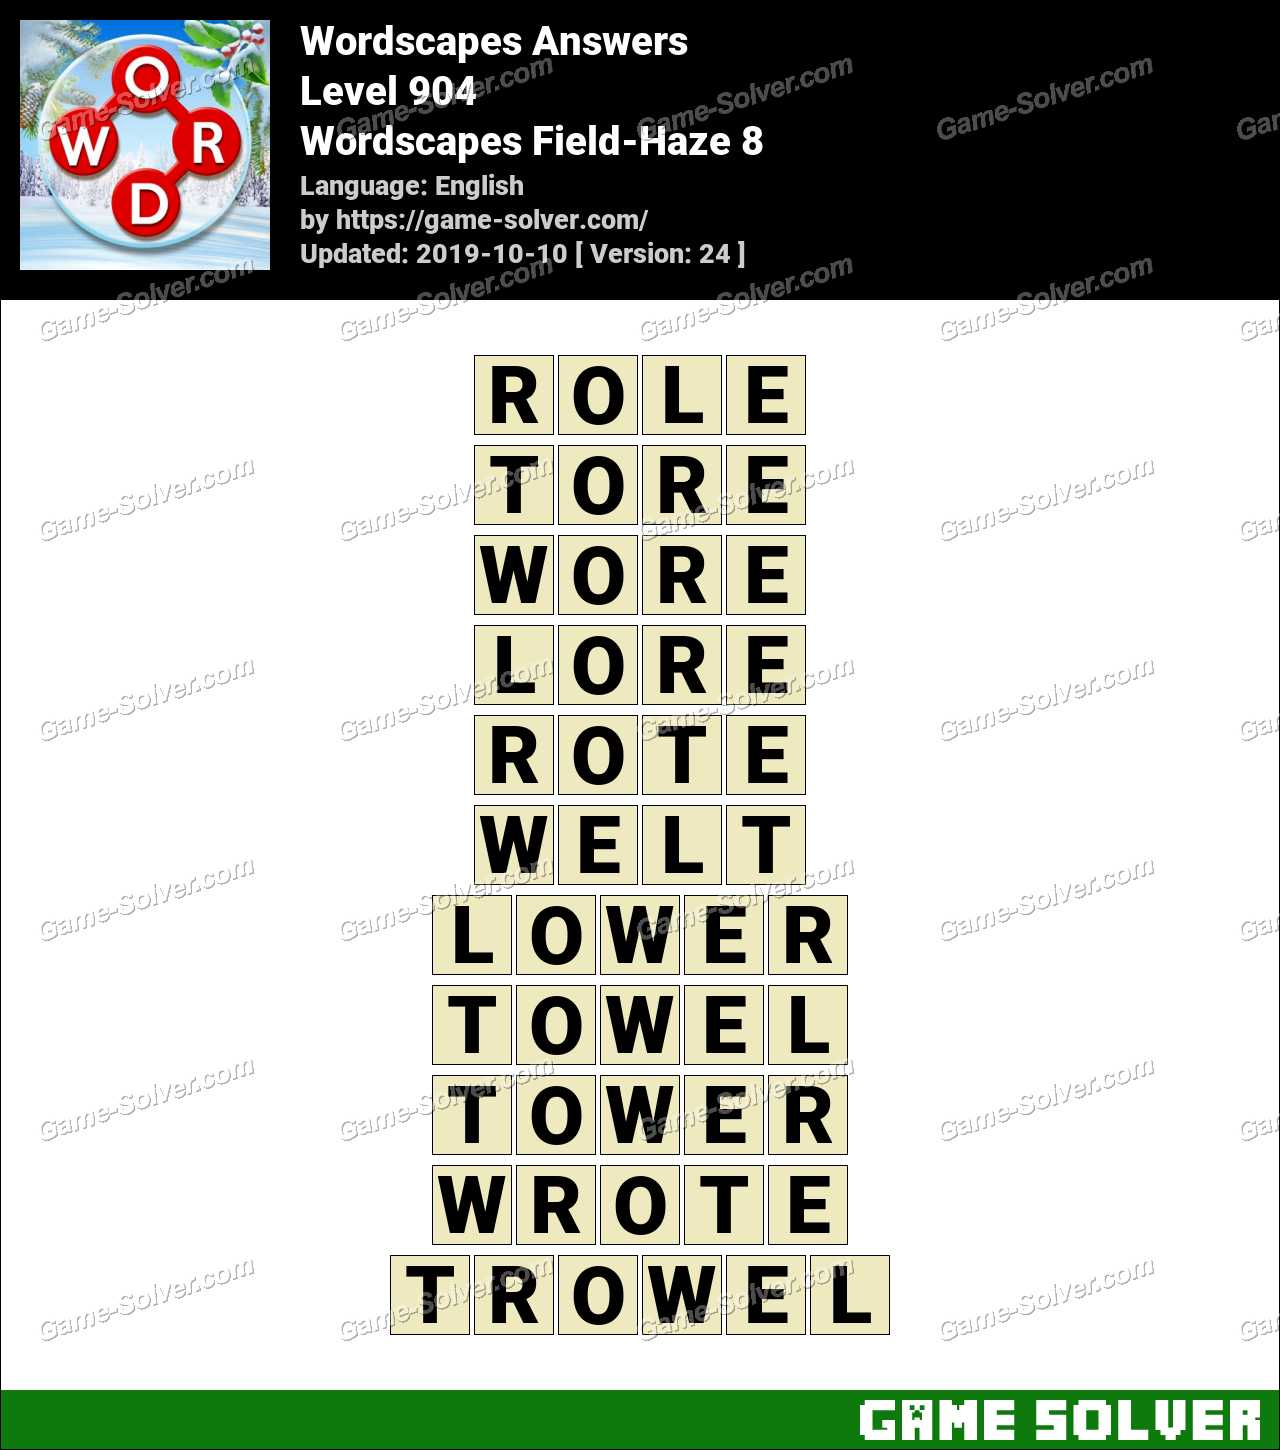 Wordscapes Field-Haze 8 Answers